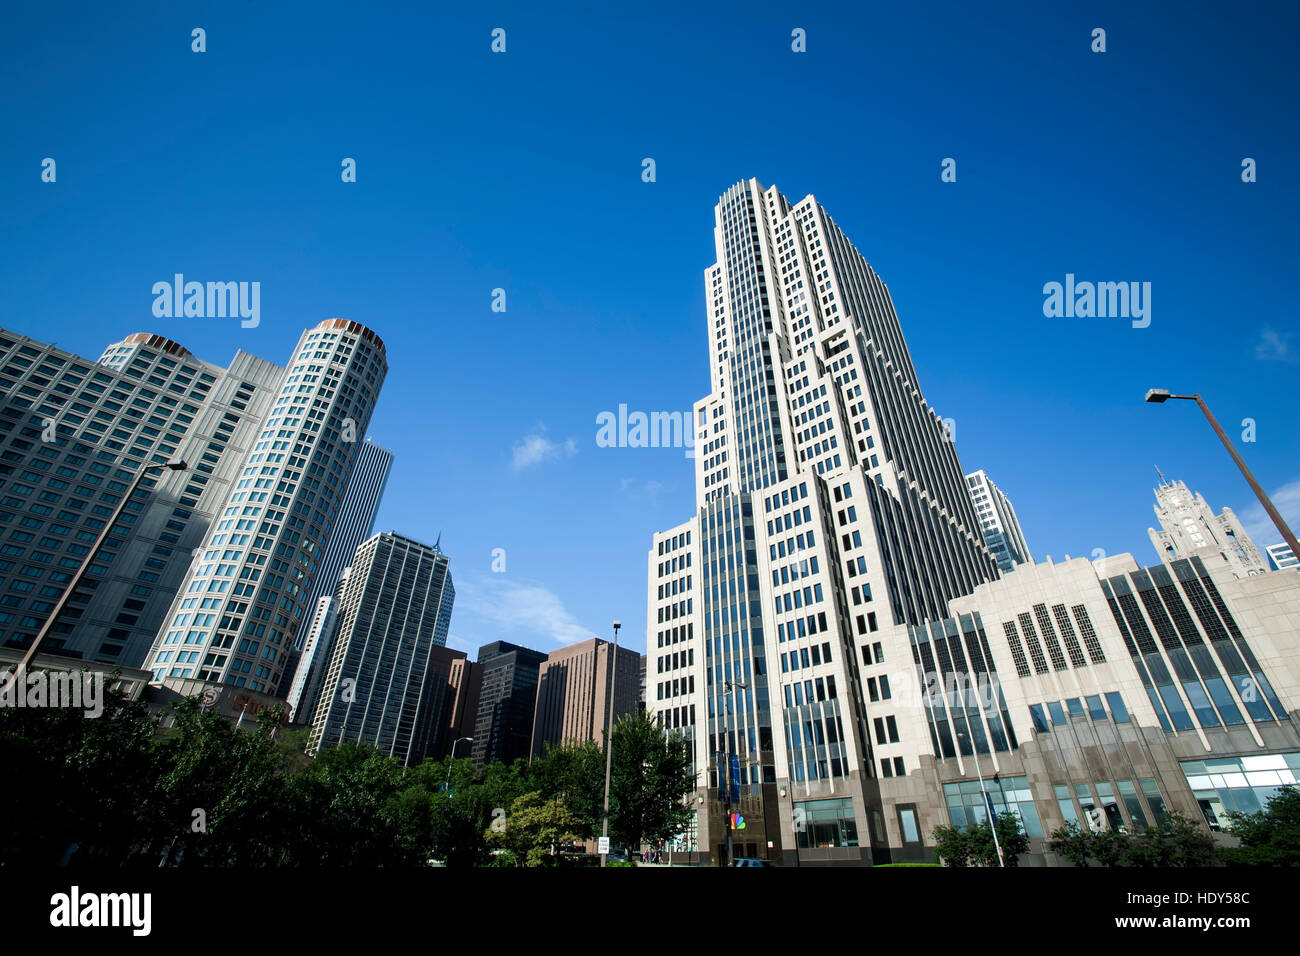 NBC Tower (R), Chicago, Illinois USA - Stock Image